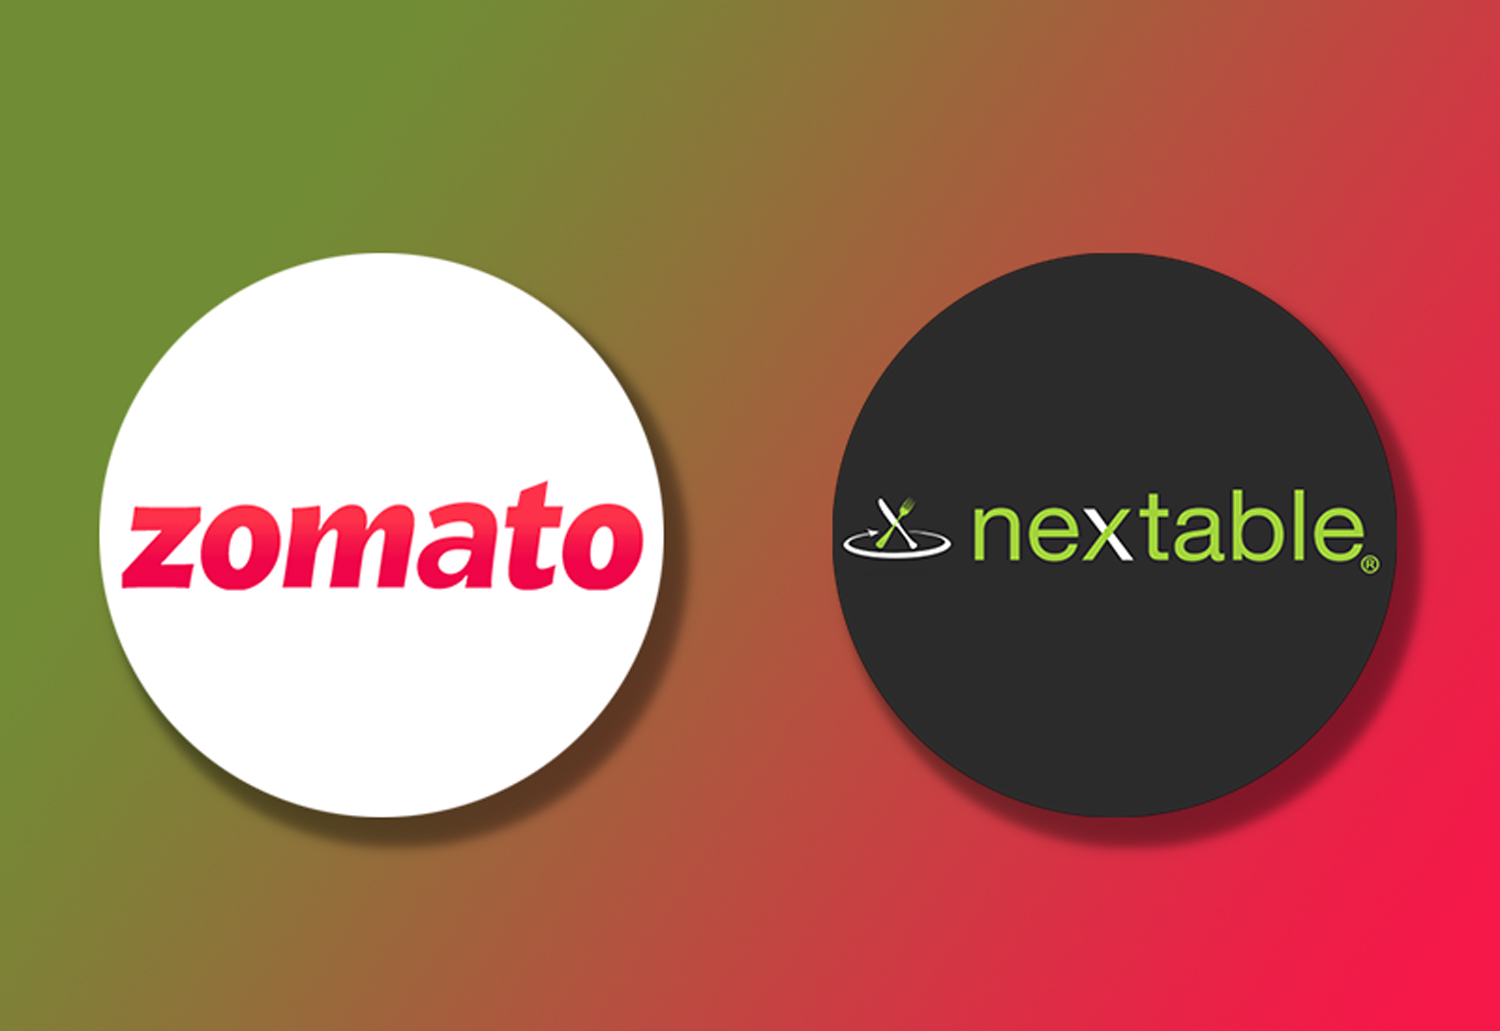 Logo of Zomato and Nextable on a Gradient background